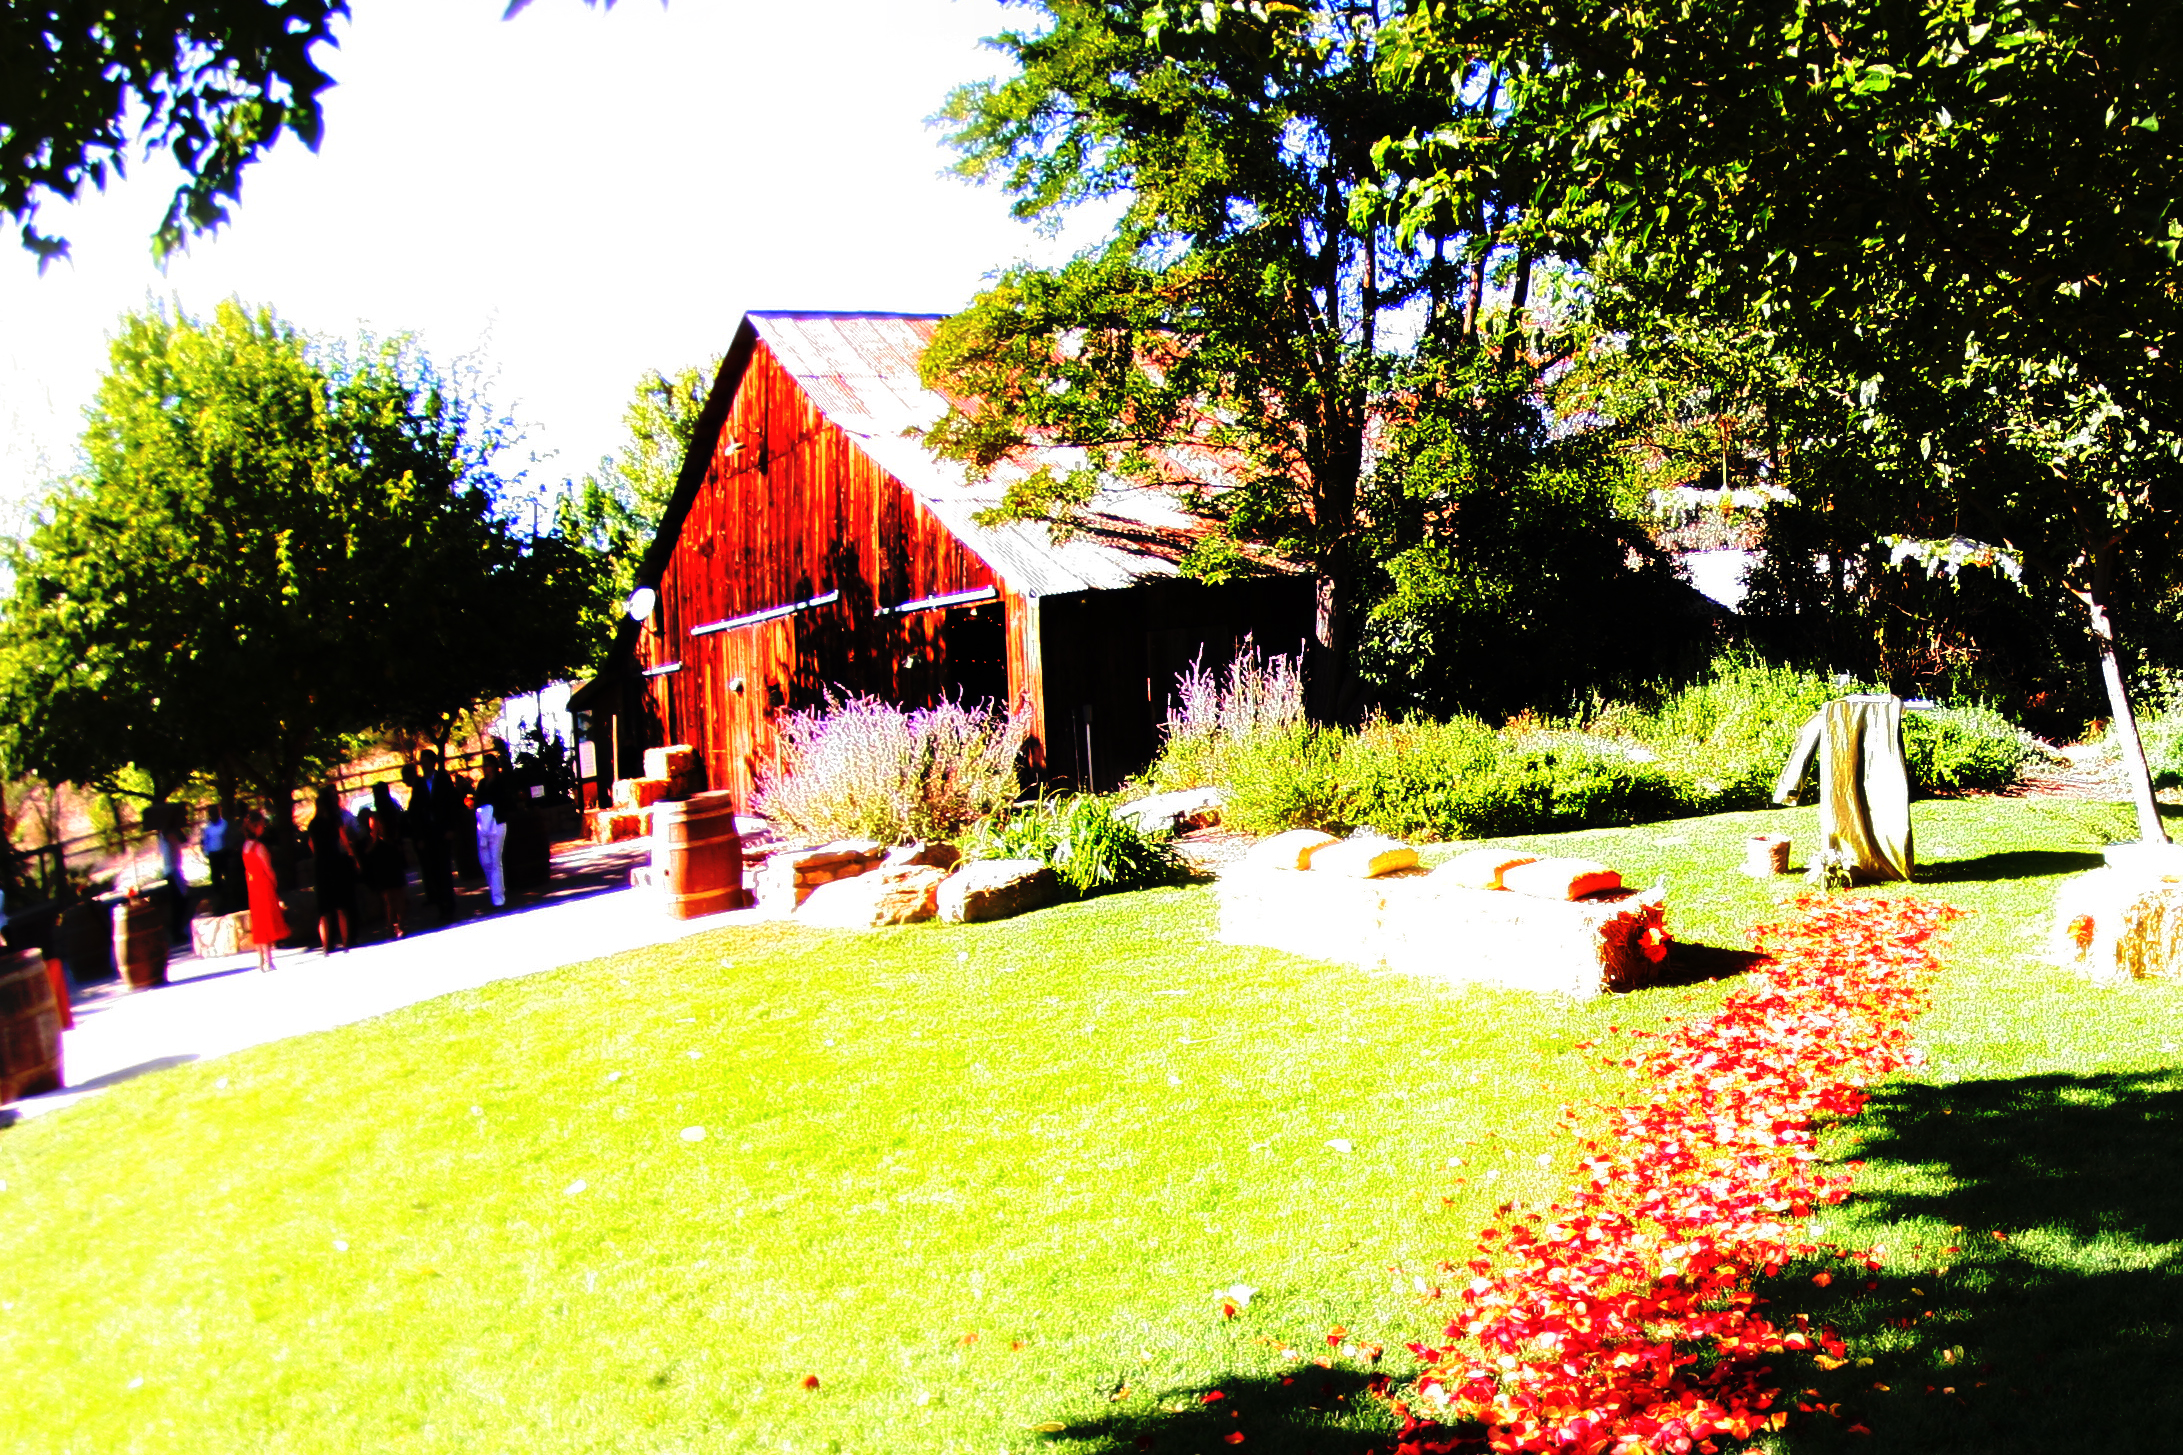 Paso Robles Has Many Properties With Barns Available For Your Special Event Ranging From One To 100 Years Old Can Offer History And Quaintness